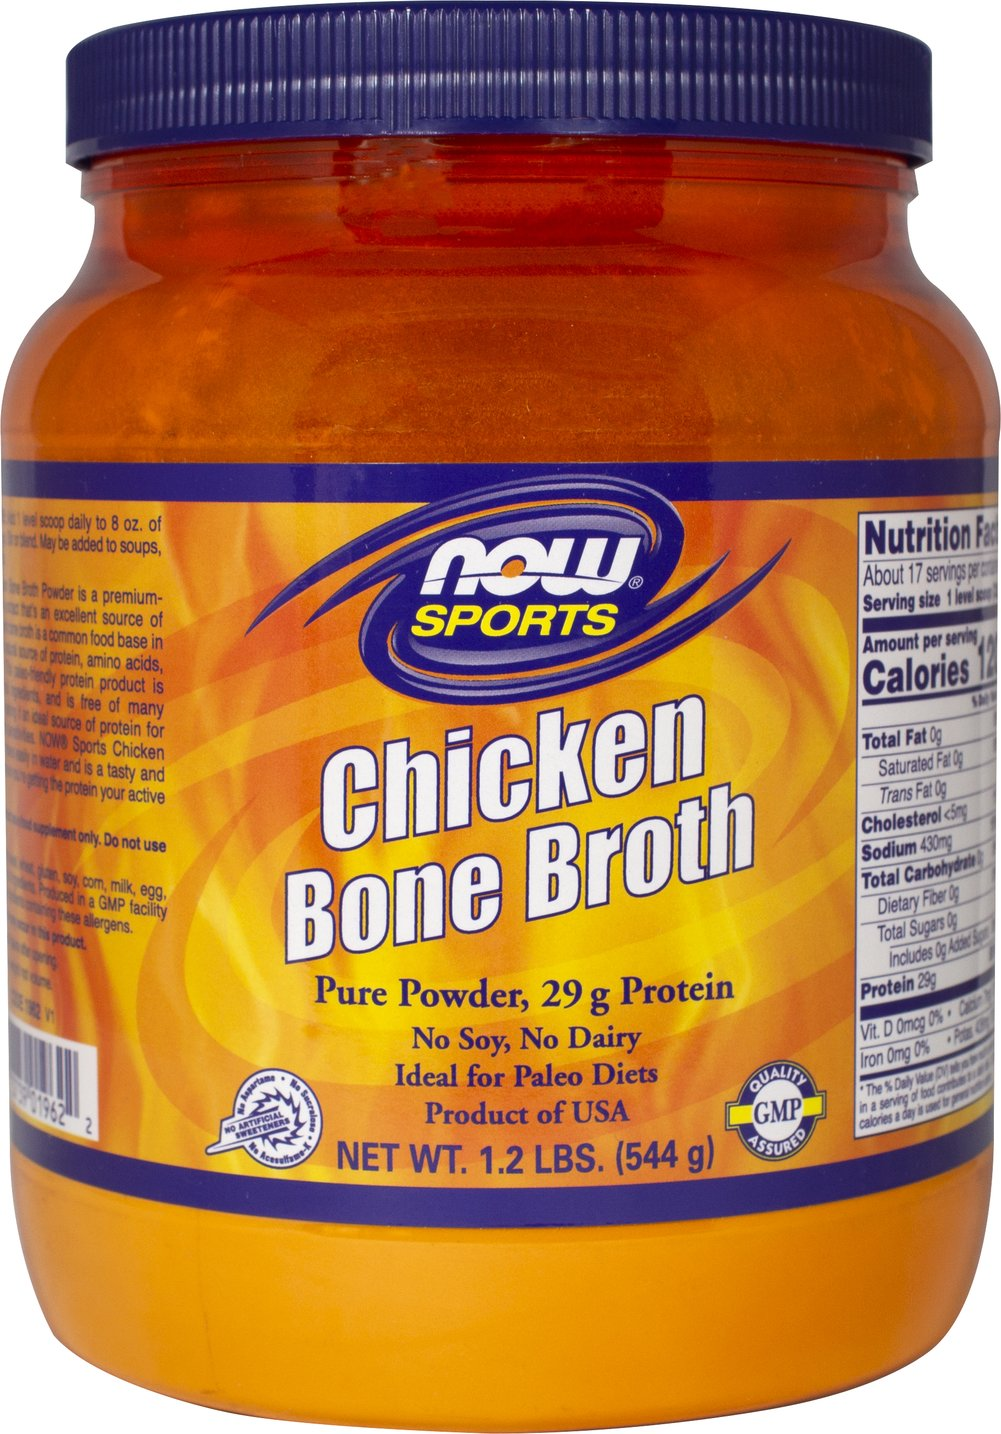 Chicken Bone Broth Thumbnail Alternate Bottle View